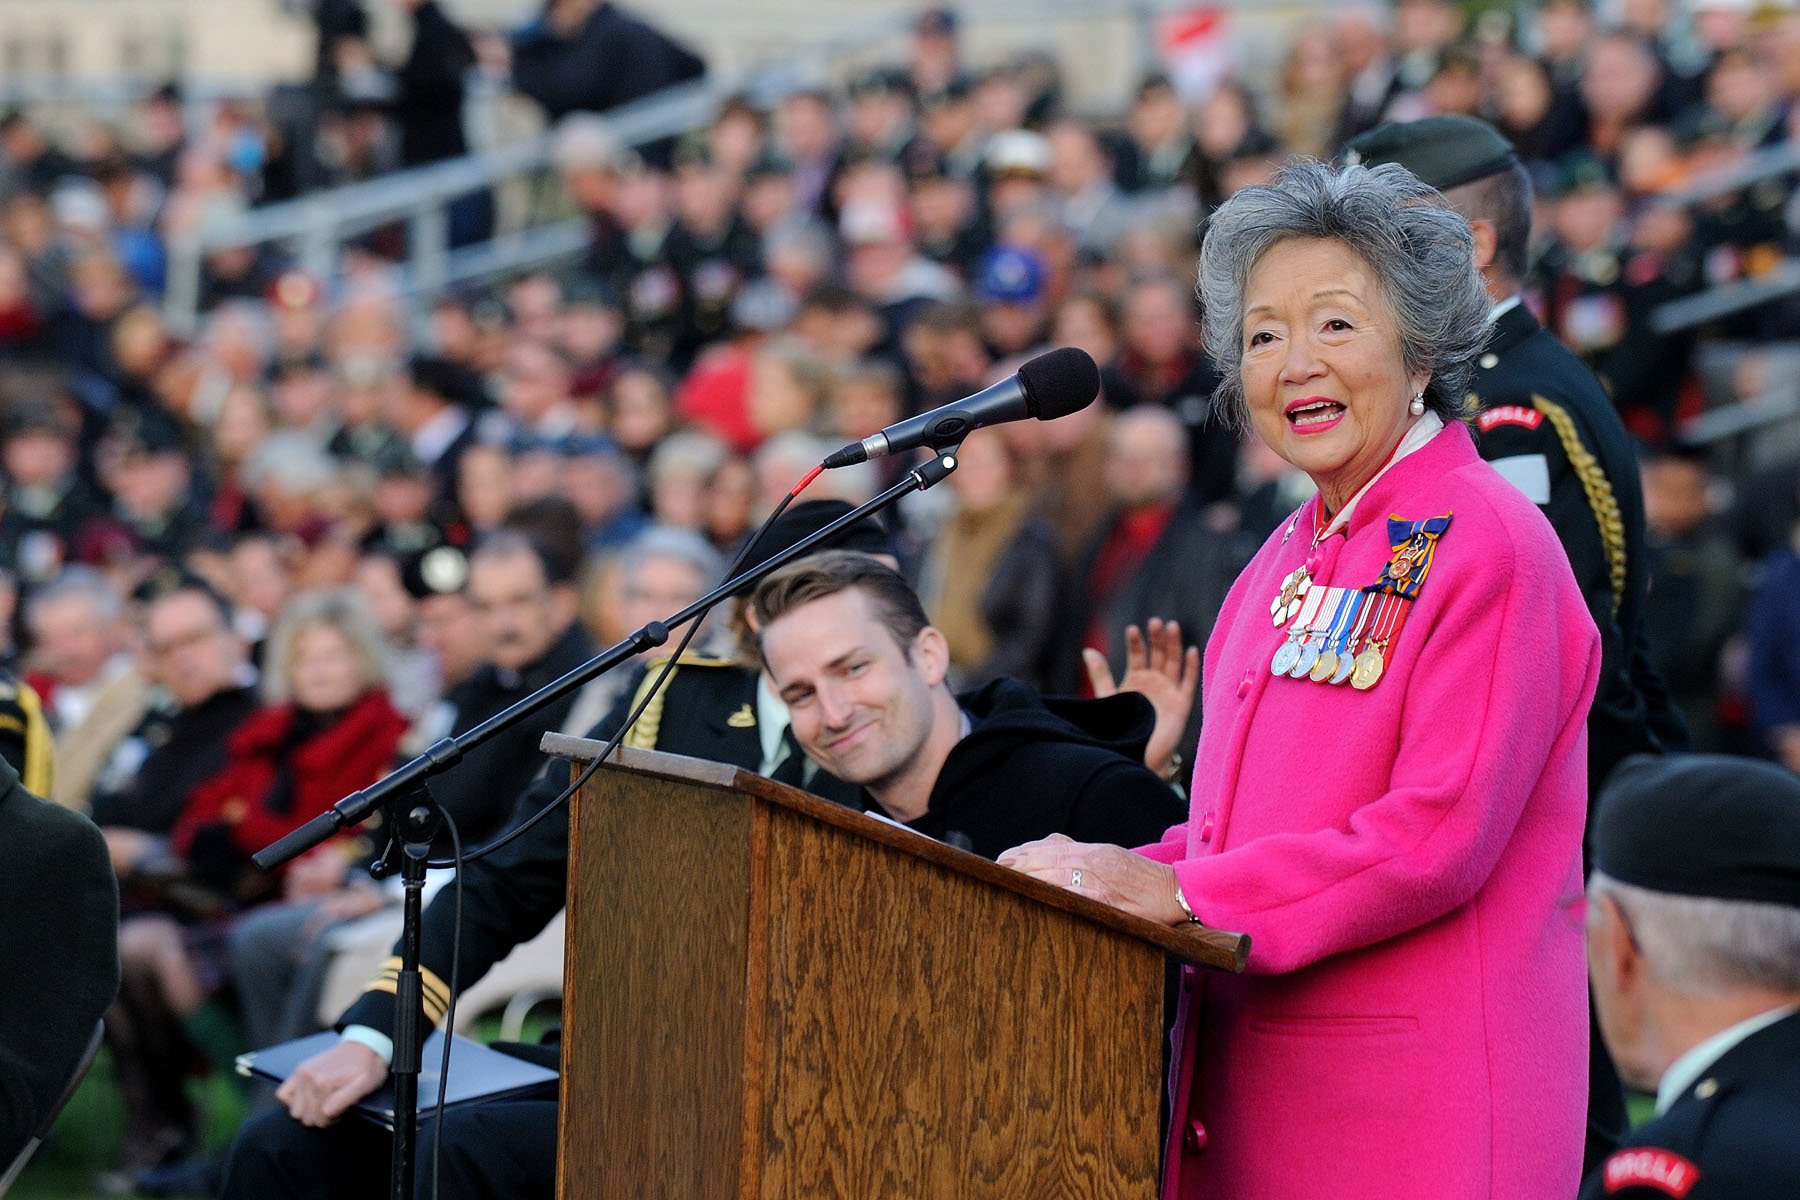 The Right Honourable Adrienne Clarkson, Colonel-in-Chief of the PPCLI and 26th governor general of Canada, addressed her troops.